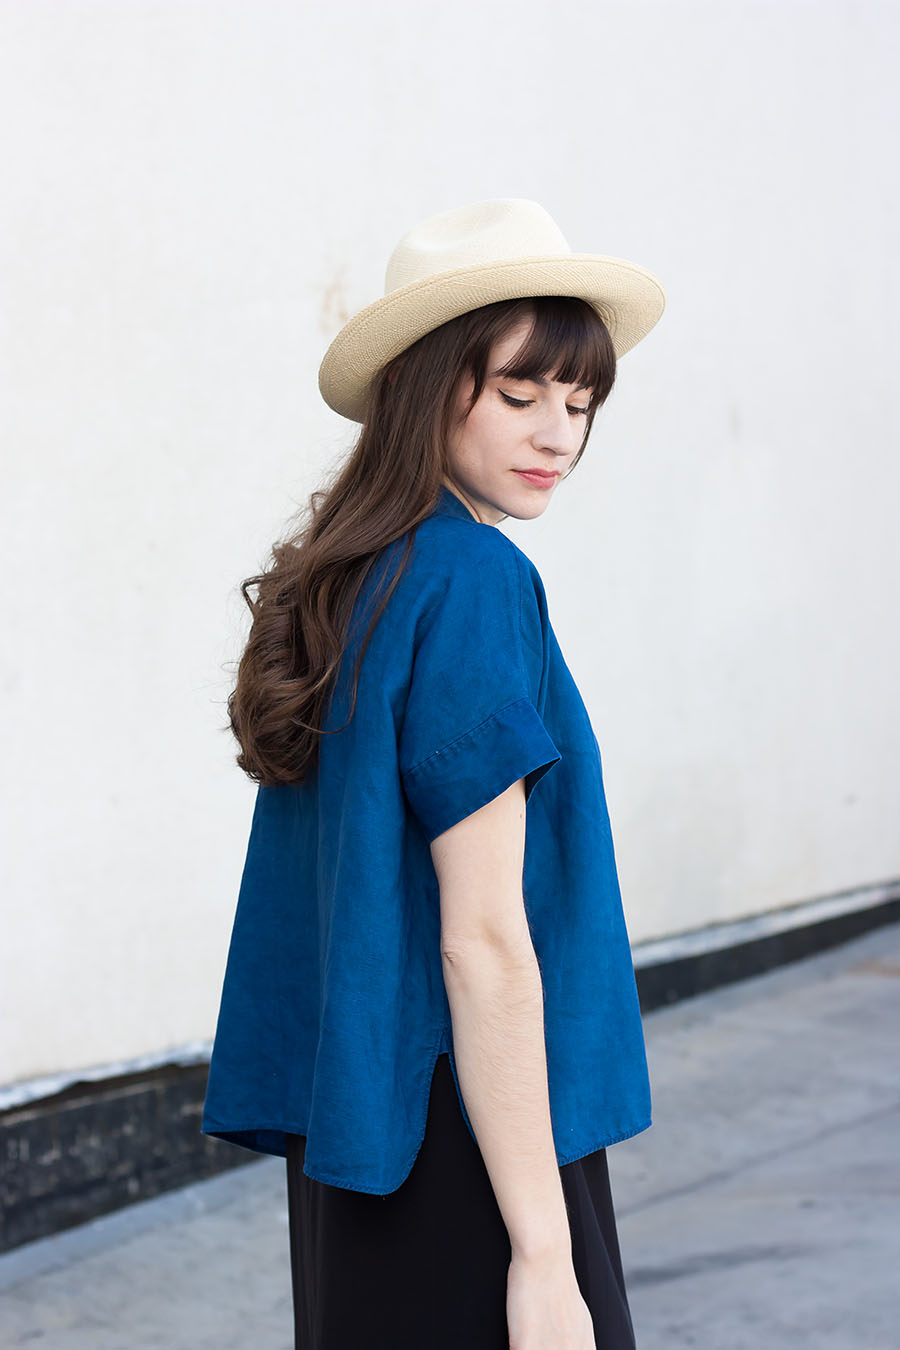 Everlane Shirt, Panama Hat, Summer Style for Women